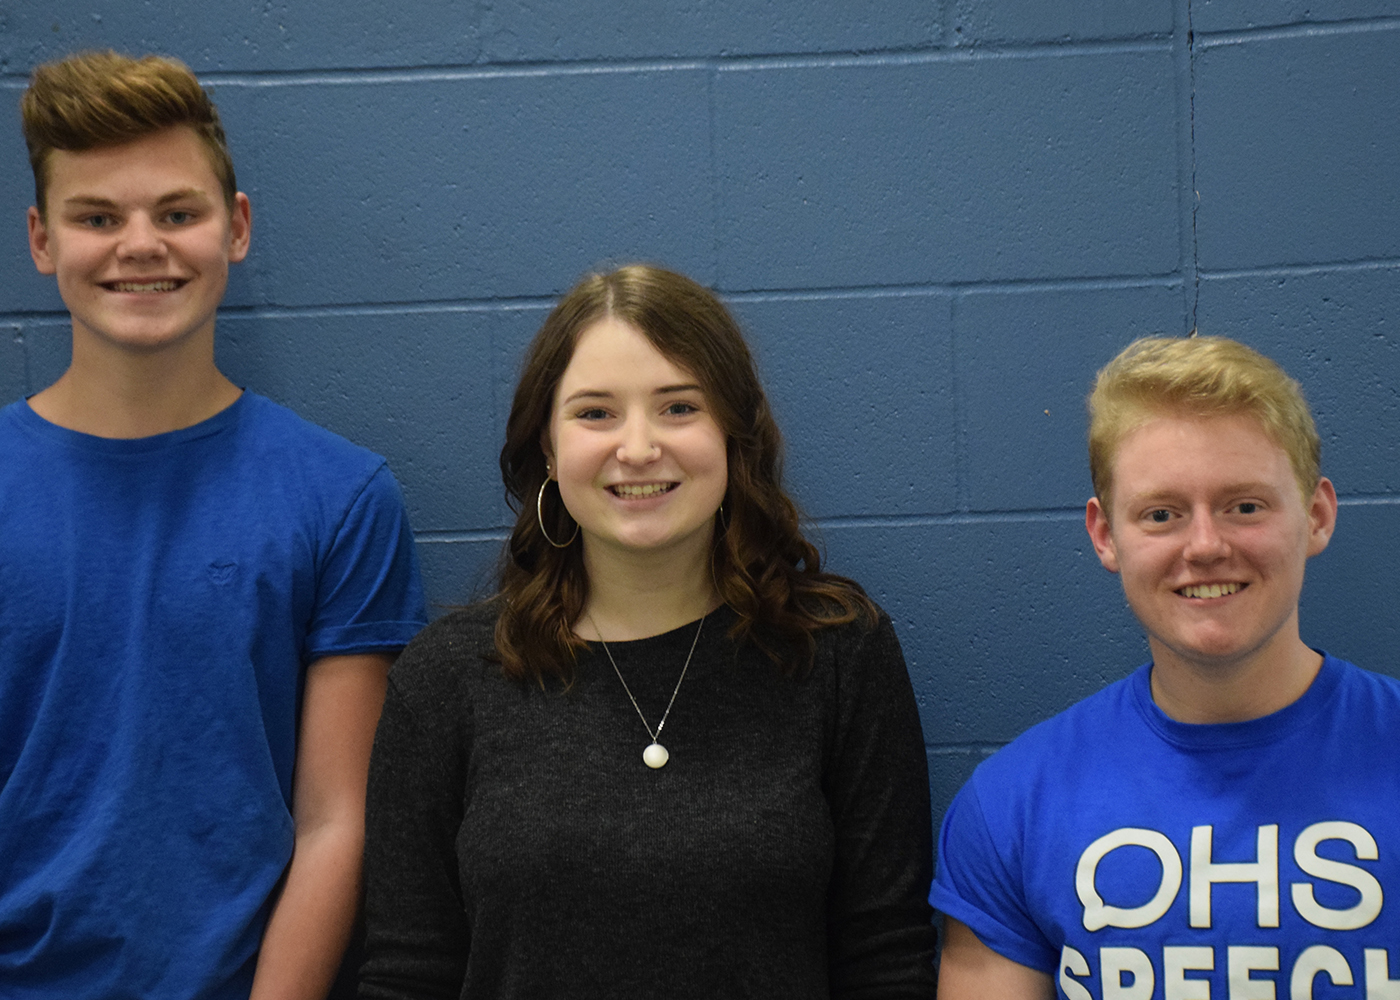 Jackson Hemann, Carolyn Stauffer, and Liam Miller all qualified for the State speech tournament. They will compete on Saturday.